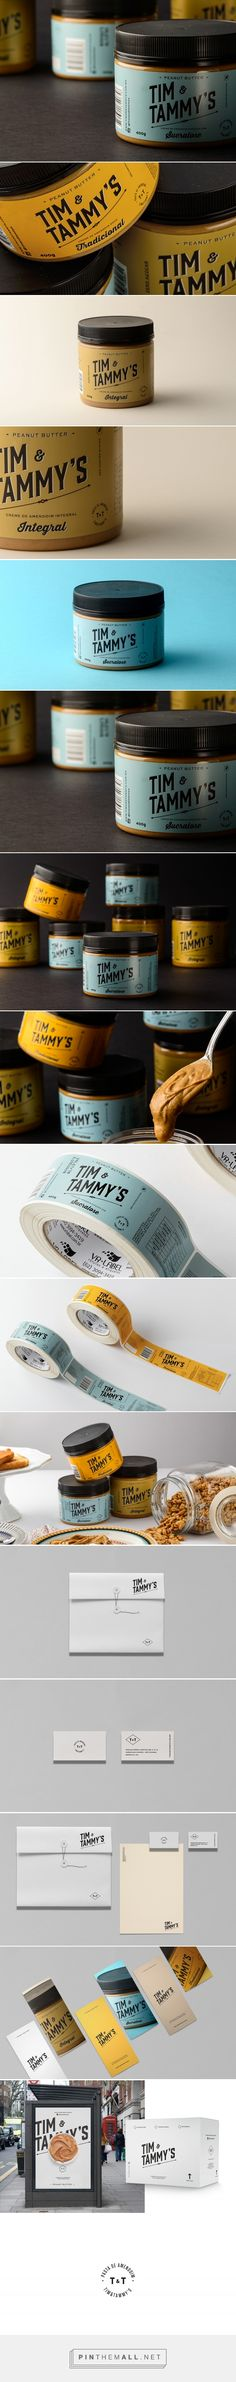 Tim & Tammy's - Brand Design on Behance - created via https://pinthemall.net